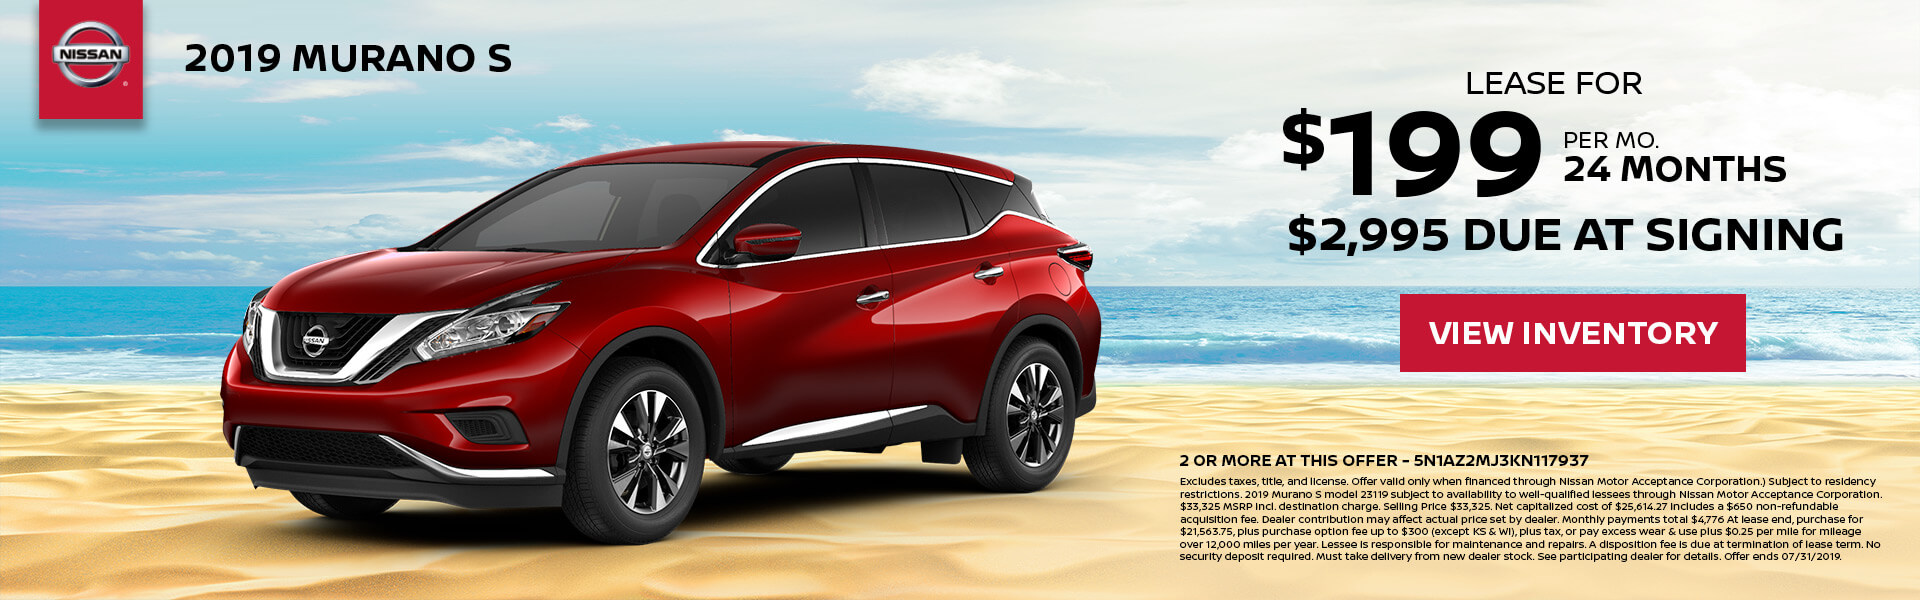 2019 Nissan Murano Lease for $199 for